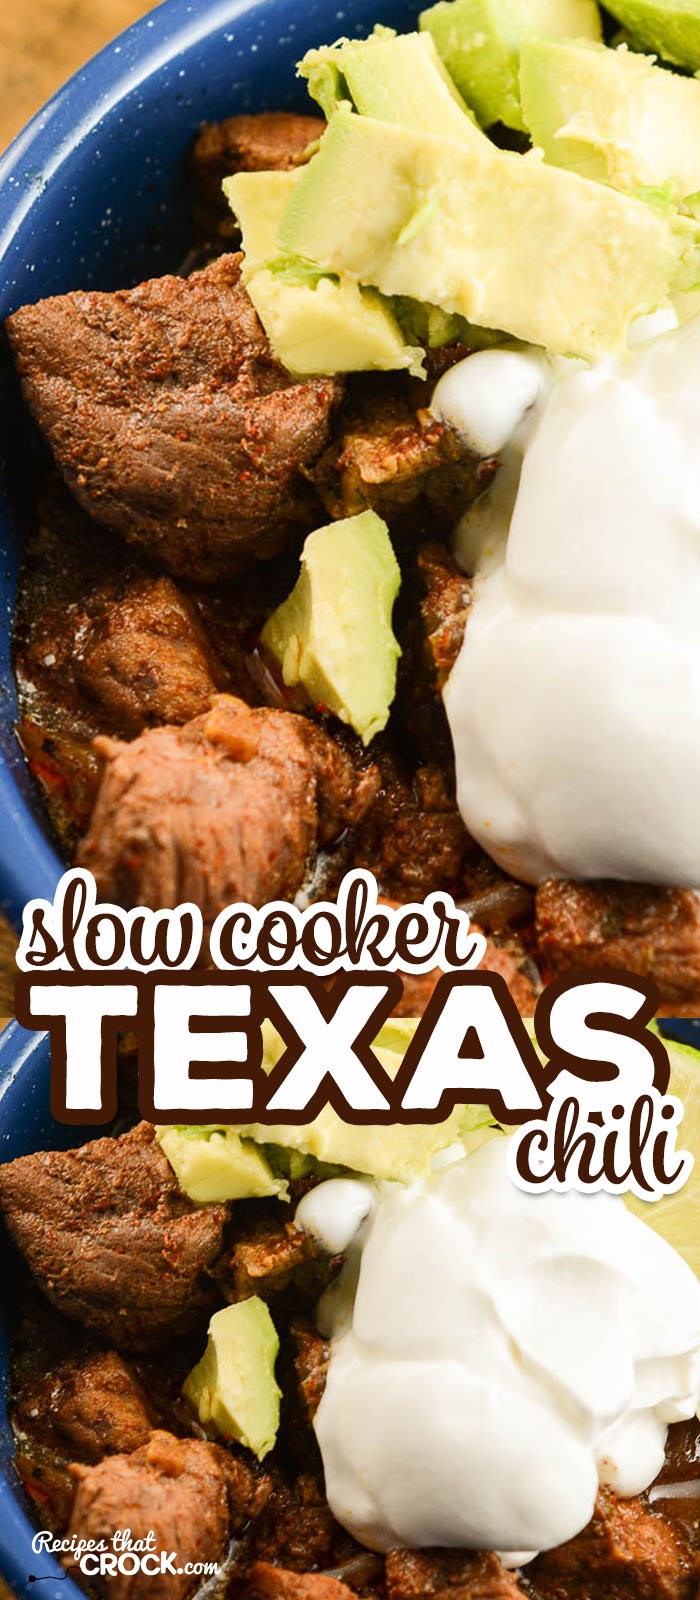 Are you looking for a yummy crock pot texas-style chili? Our Slow Cooker Texas Chili is a great low carb chili recipe for your crock pot!